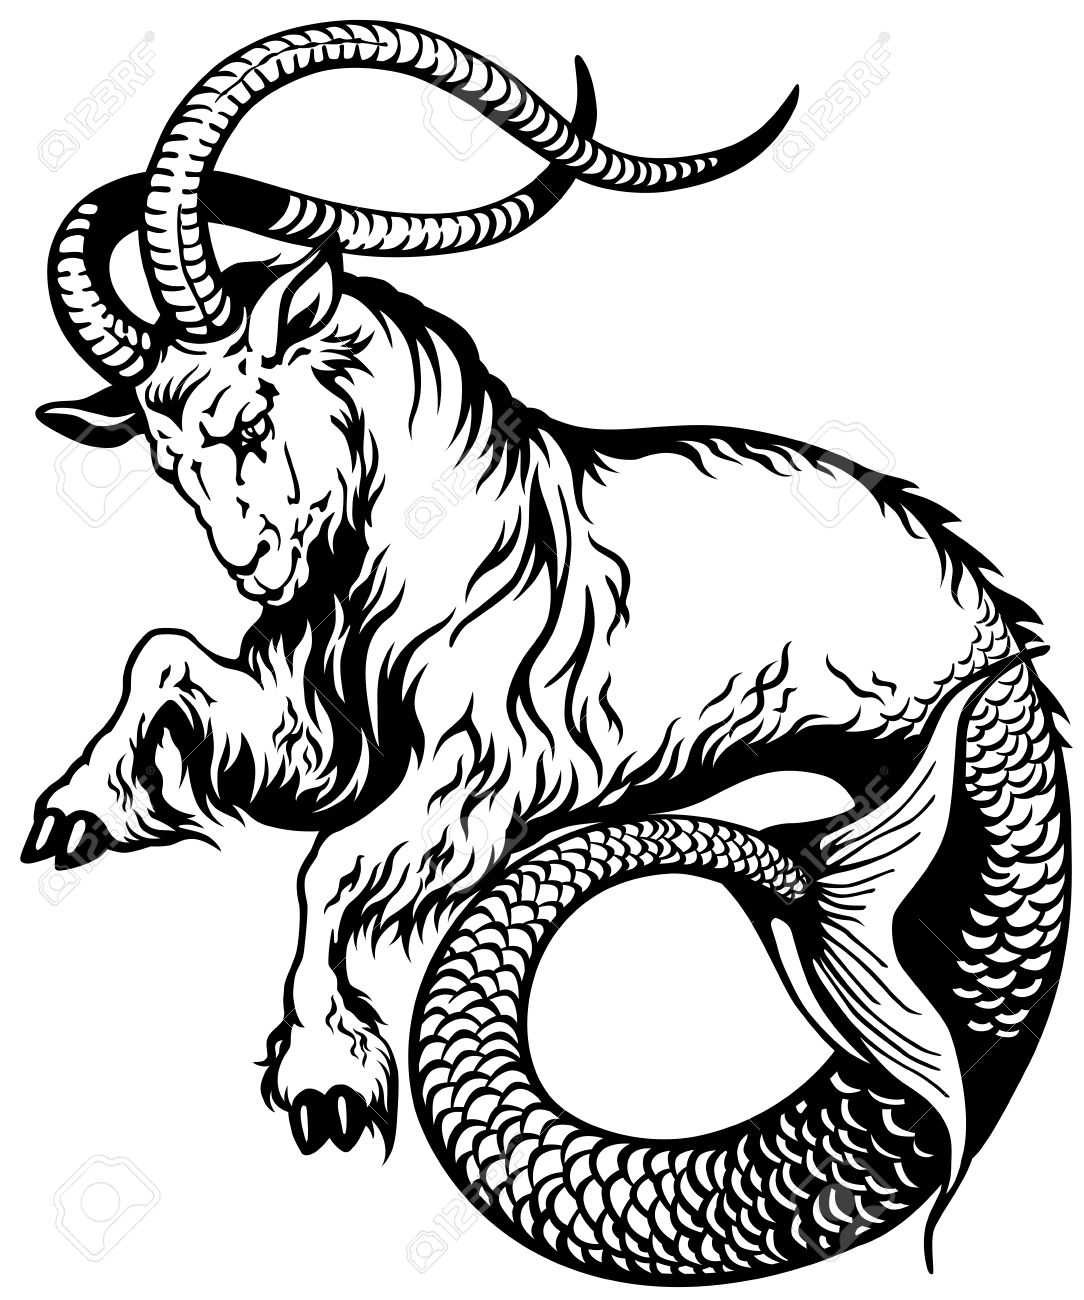 Capricorn Astrological Zodiac Sign Black And White Tattoo Image